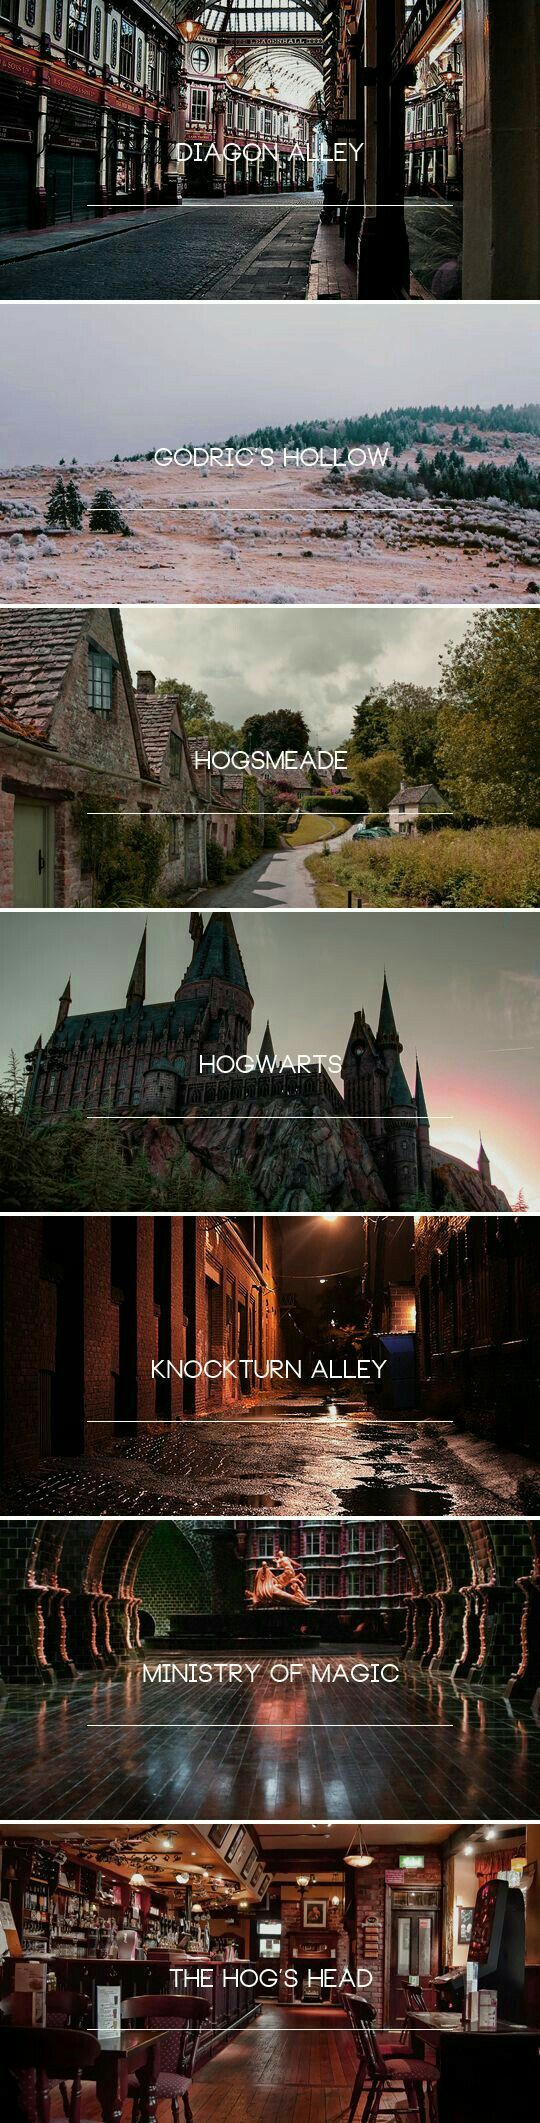 Want to go there!